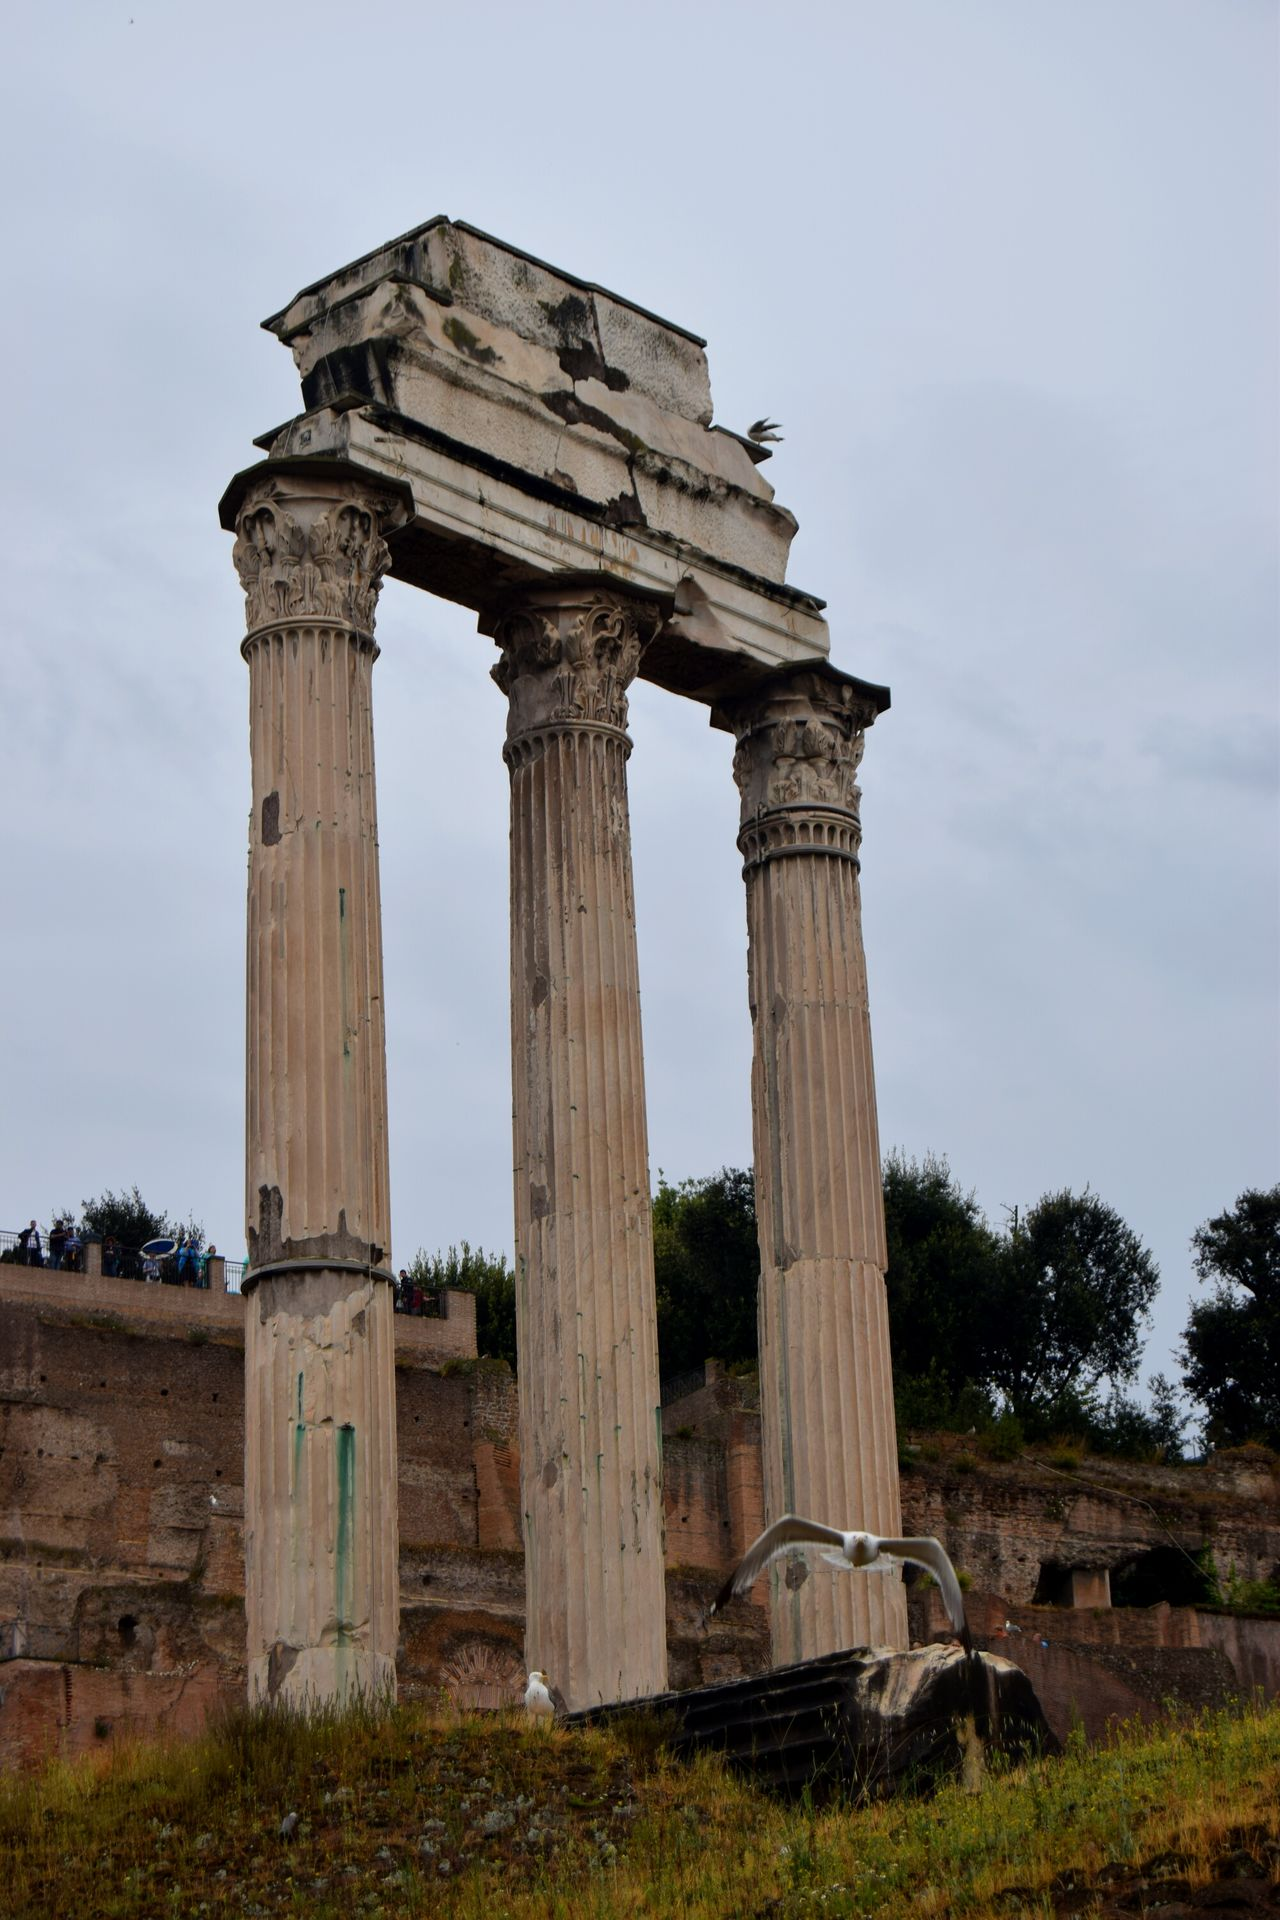 Roma Rome Italy🇮🇹 White Sky Center Forum Clouds Famous Place Ancient Culture The Week Of Eyeem Ancient Architecture Photography Photographer Old Walk Ancient Ruins Temple Architecture Temple Ruins Exploring Streetphotography Picoftheday Photooftheday Marmol Rainy Days